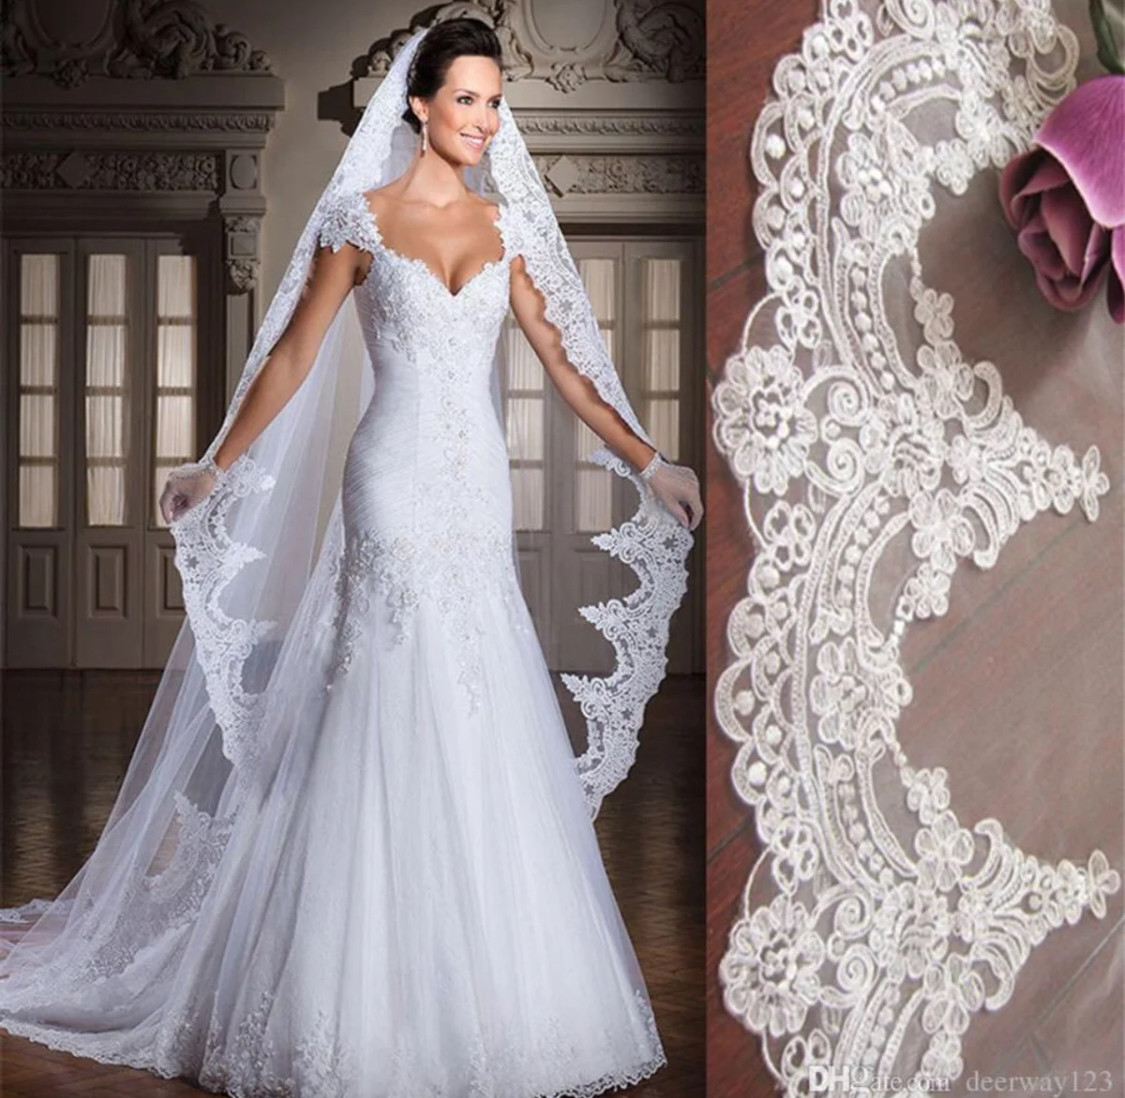 3m/10 ft White or Ivory Lace Appliqué edge Cathedral Veil With Comb